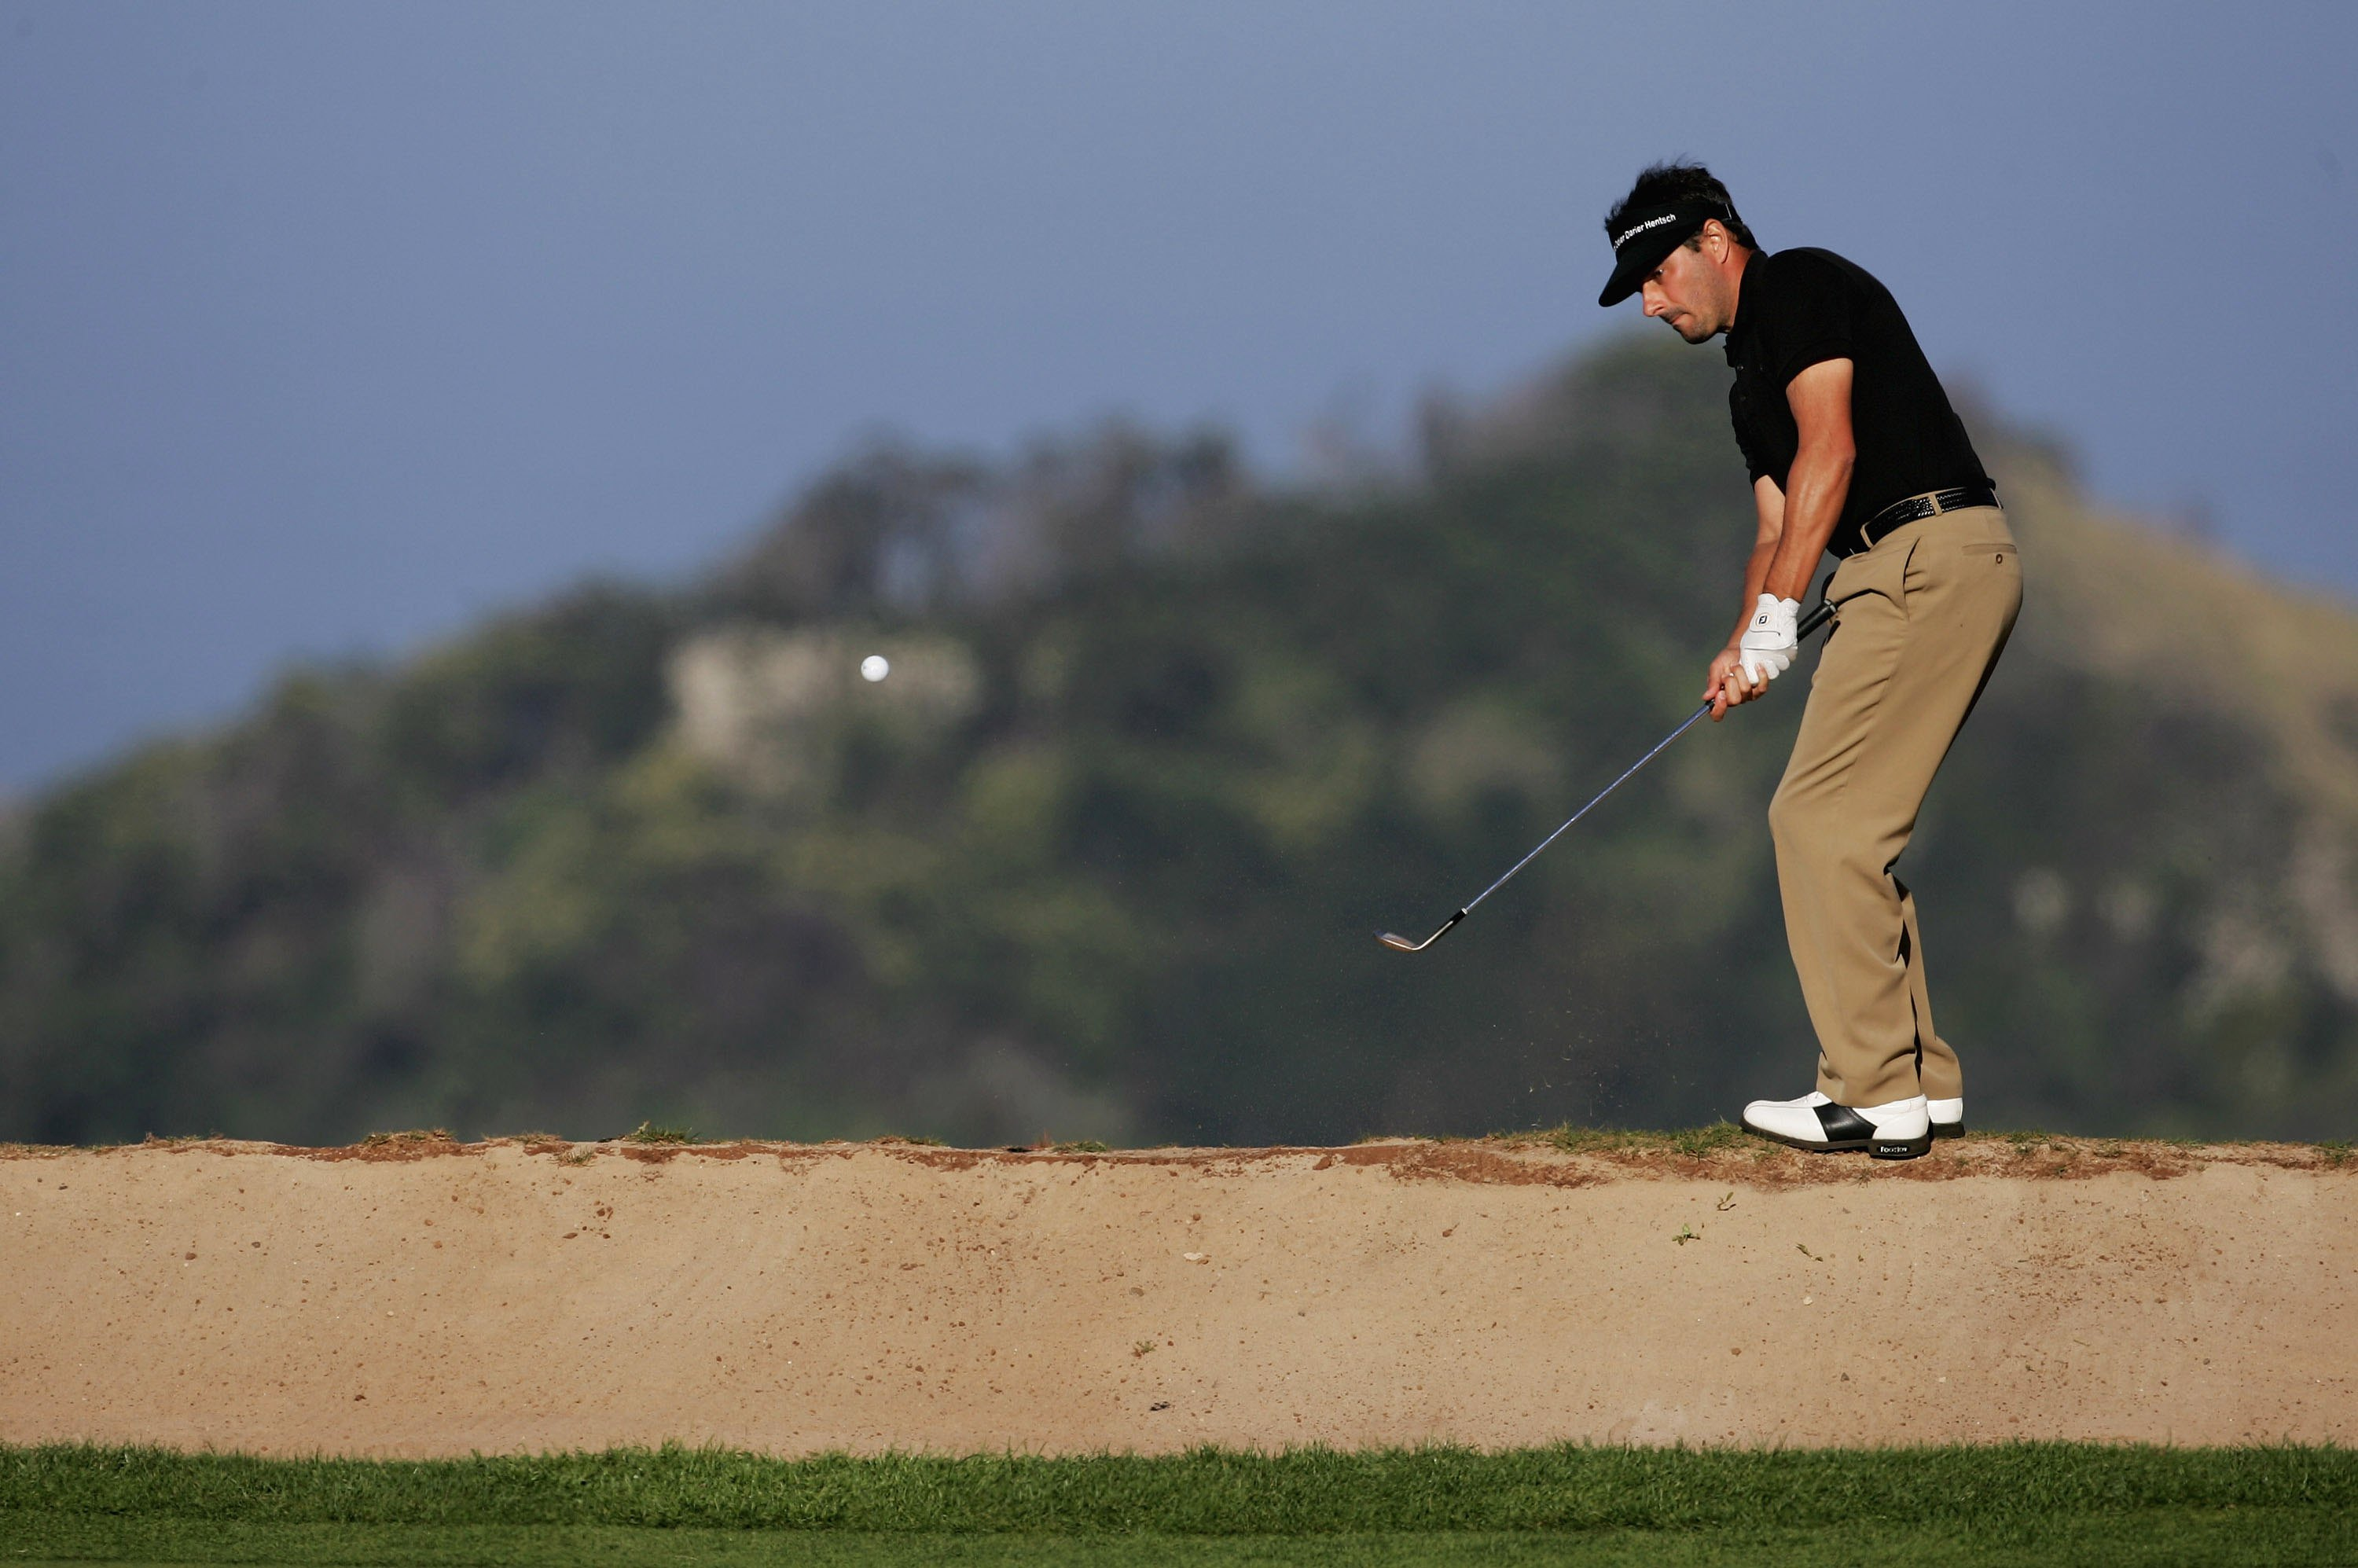 Make sure you practise hard shots, says Duncan Woolger (Photo: Getty Images)